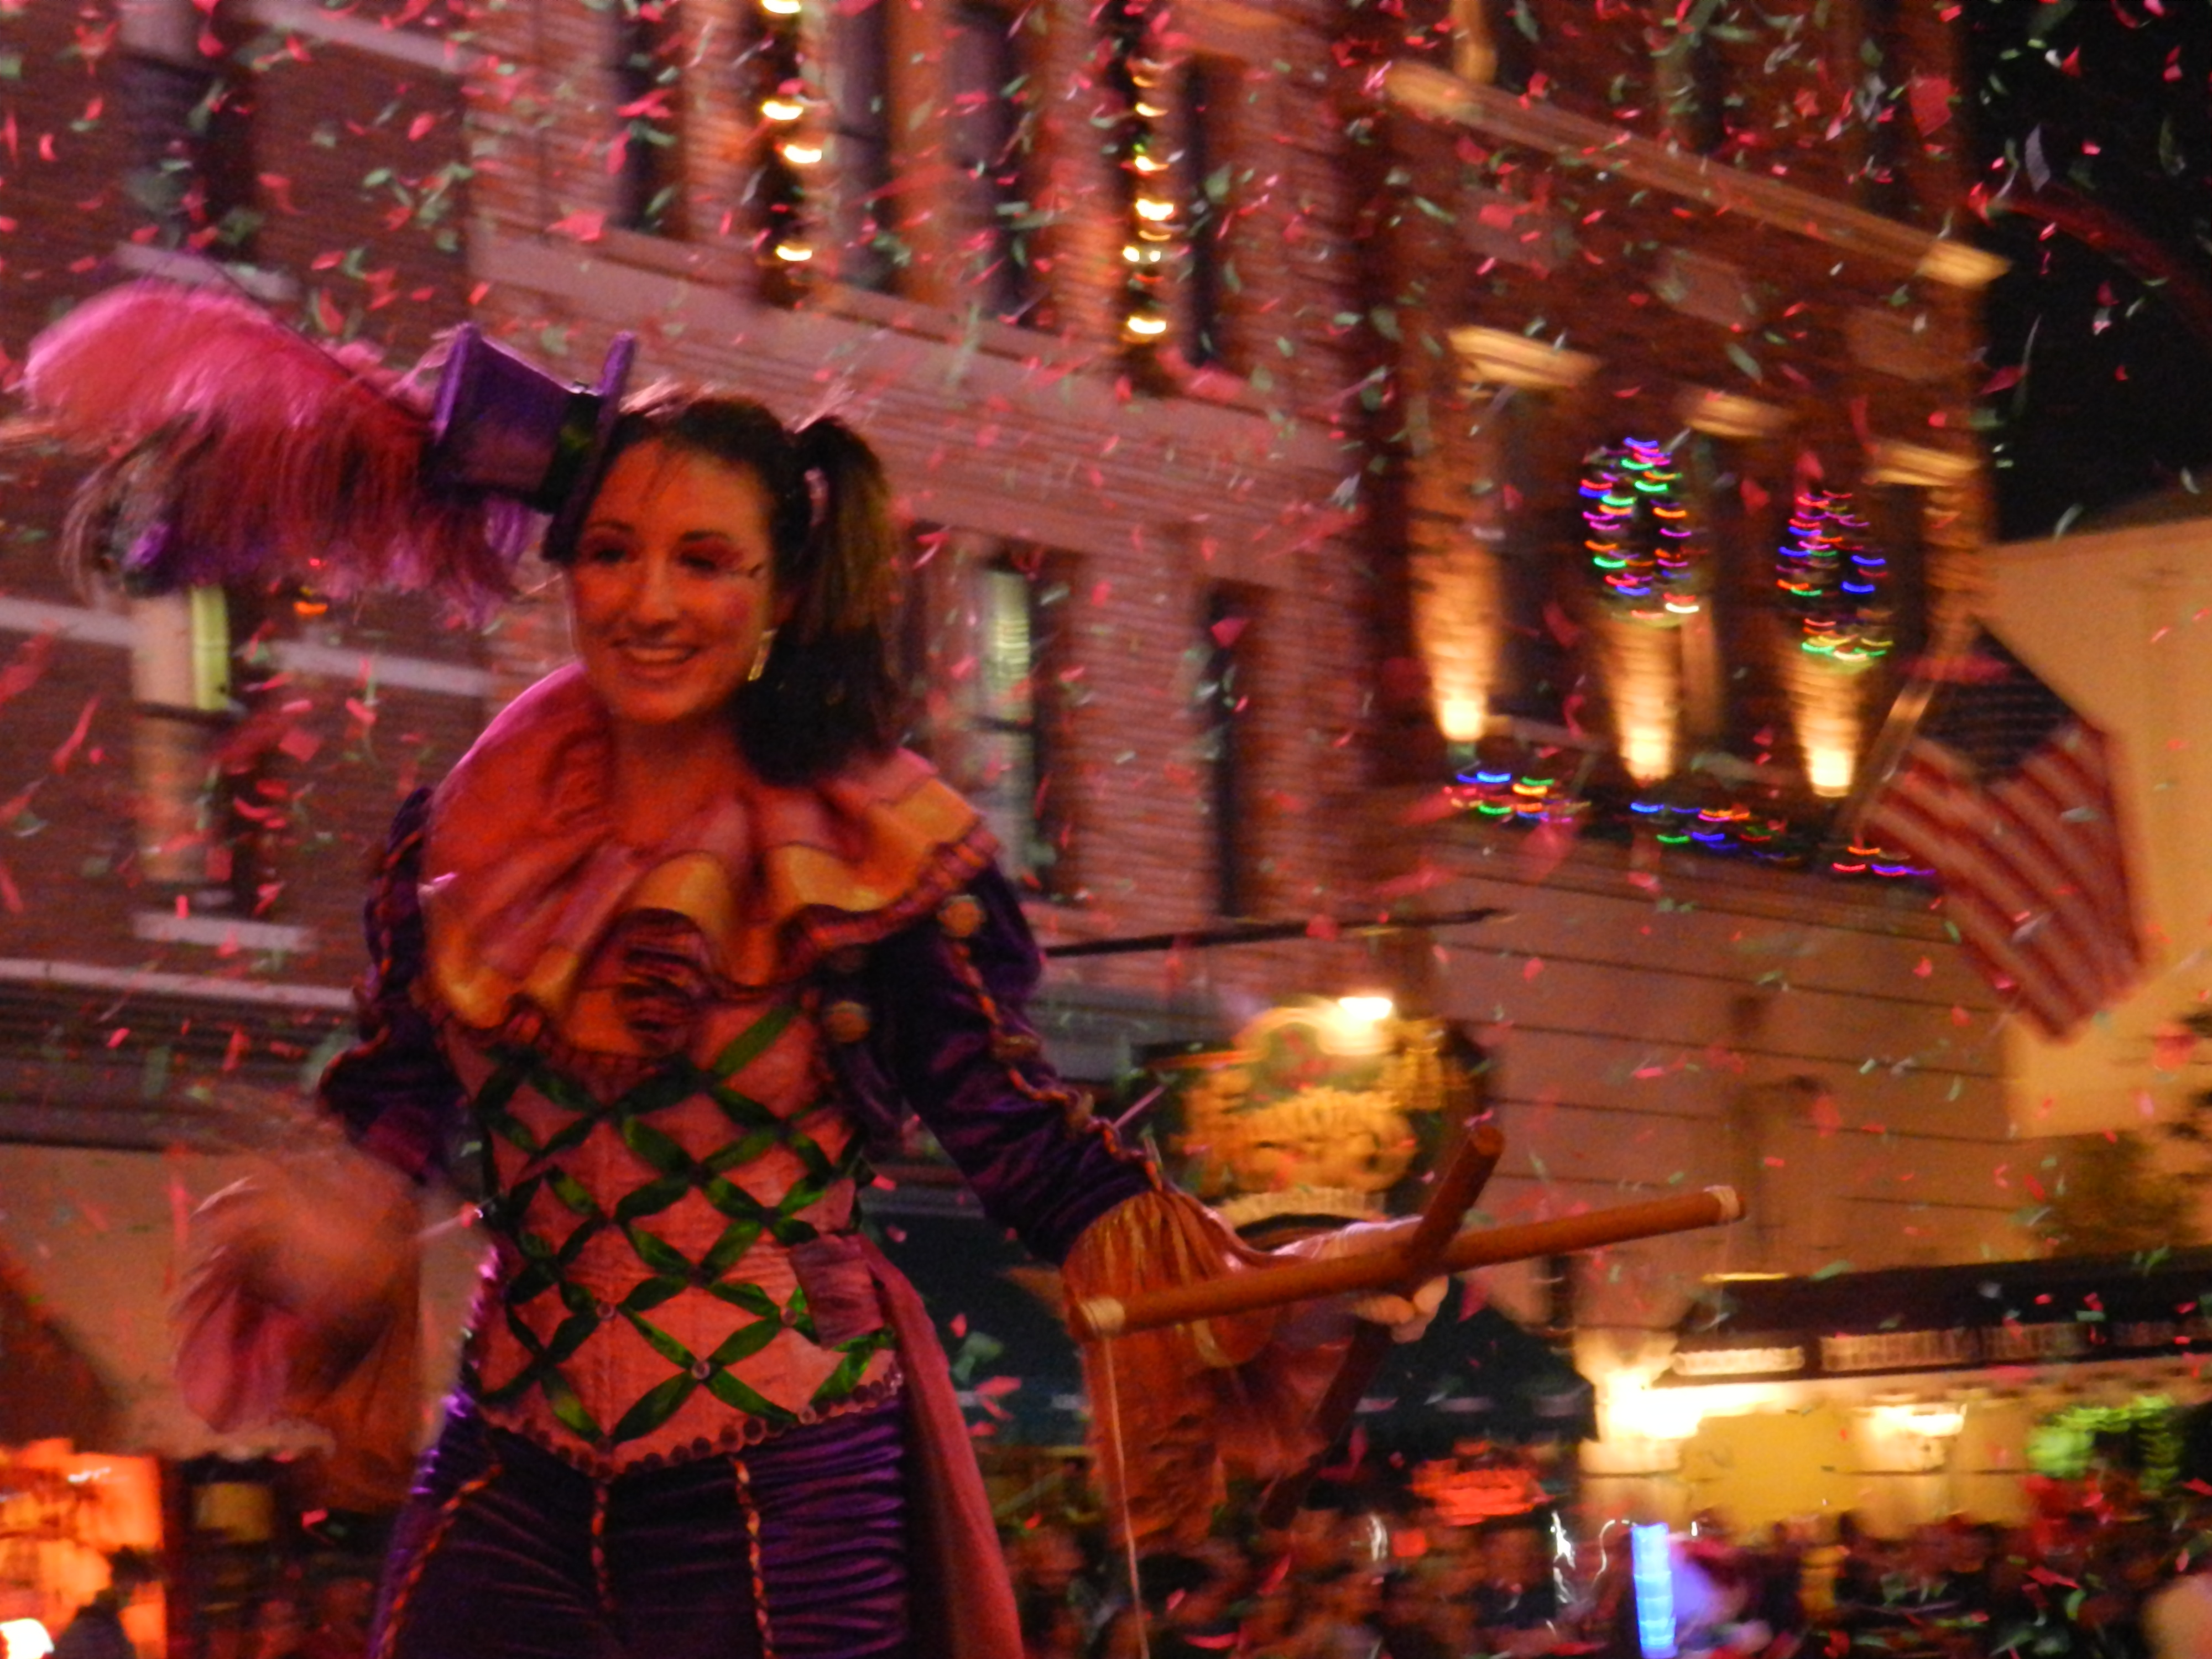 Macy's Holiday Parade at Universal Studios party with confetti